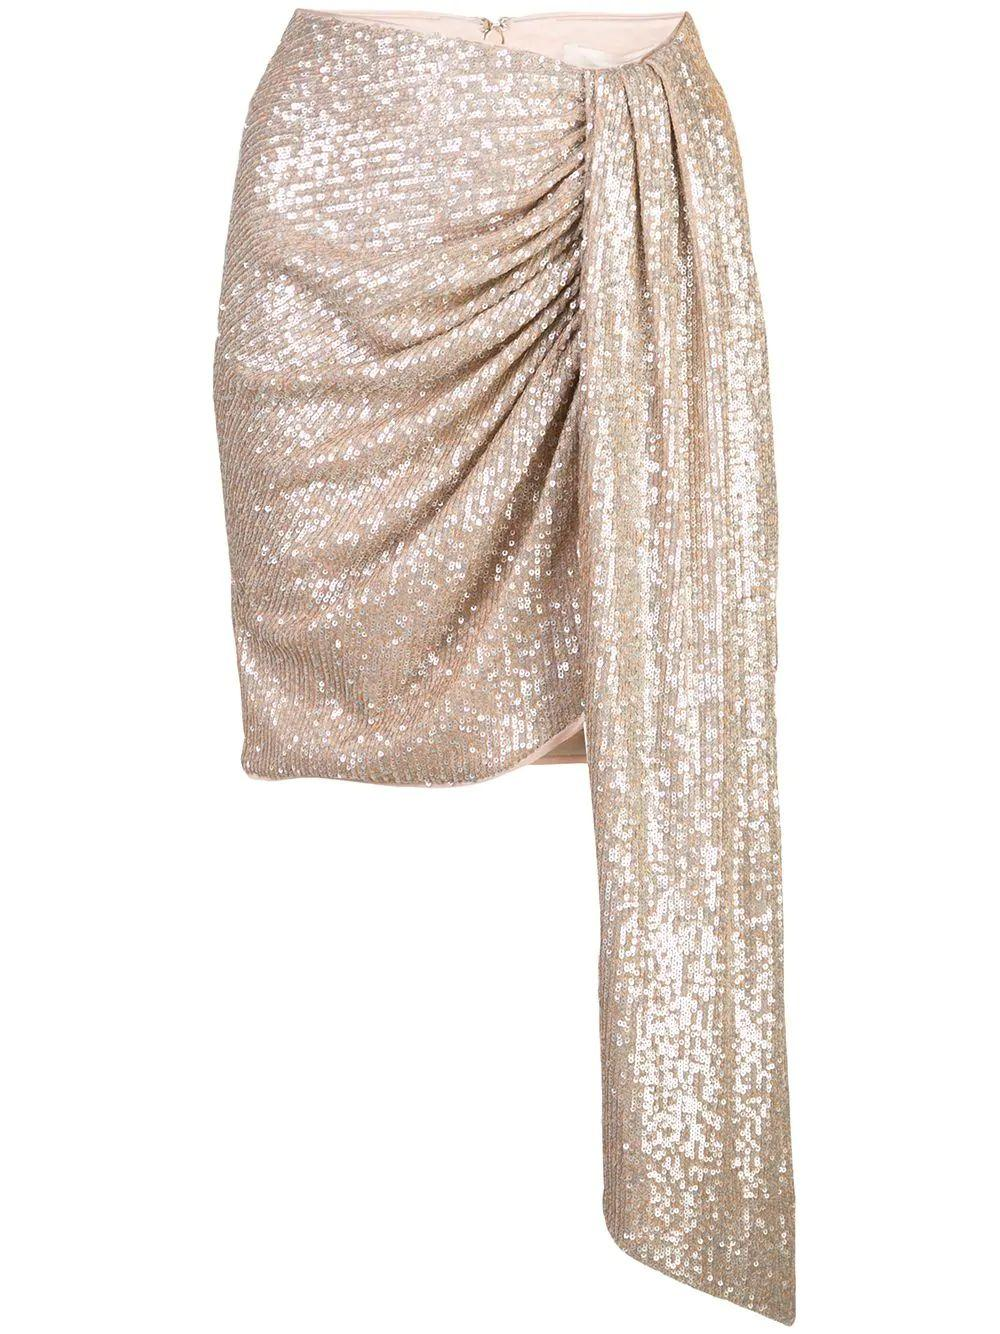 Sequin Embroidered Mini Drape Front Skirt Item # 120-3005-S